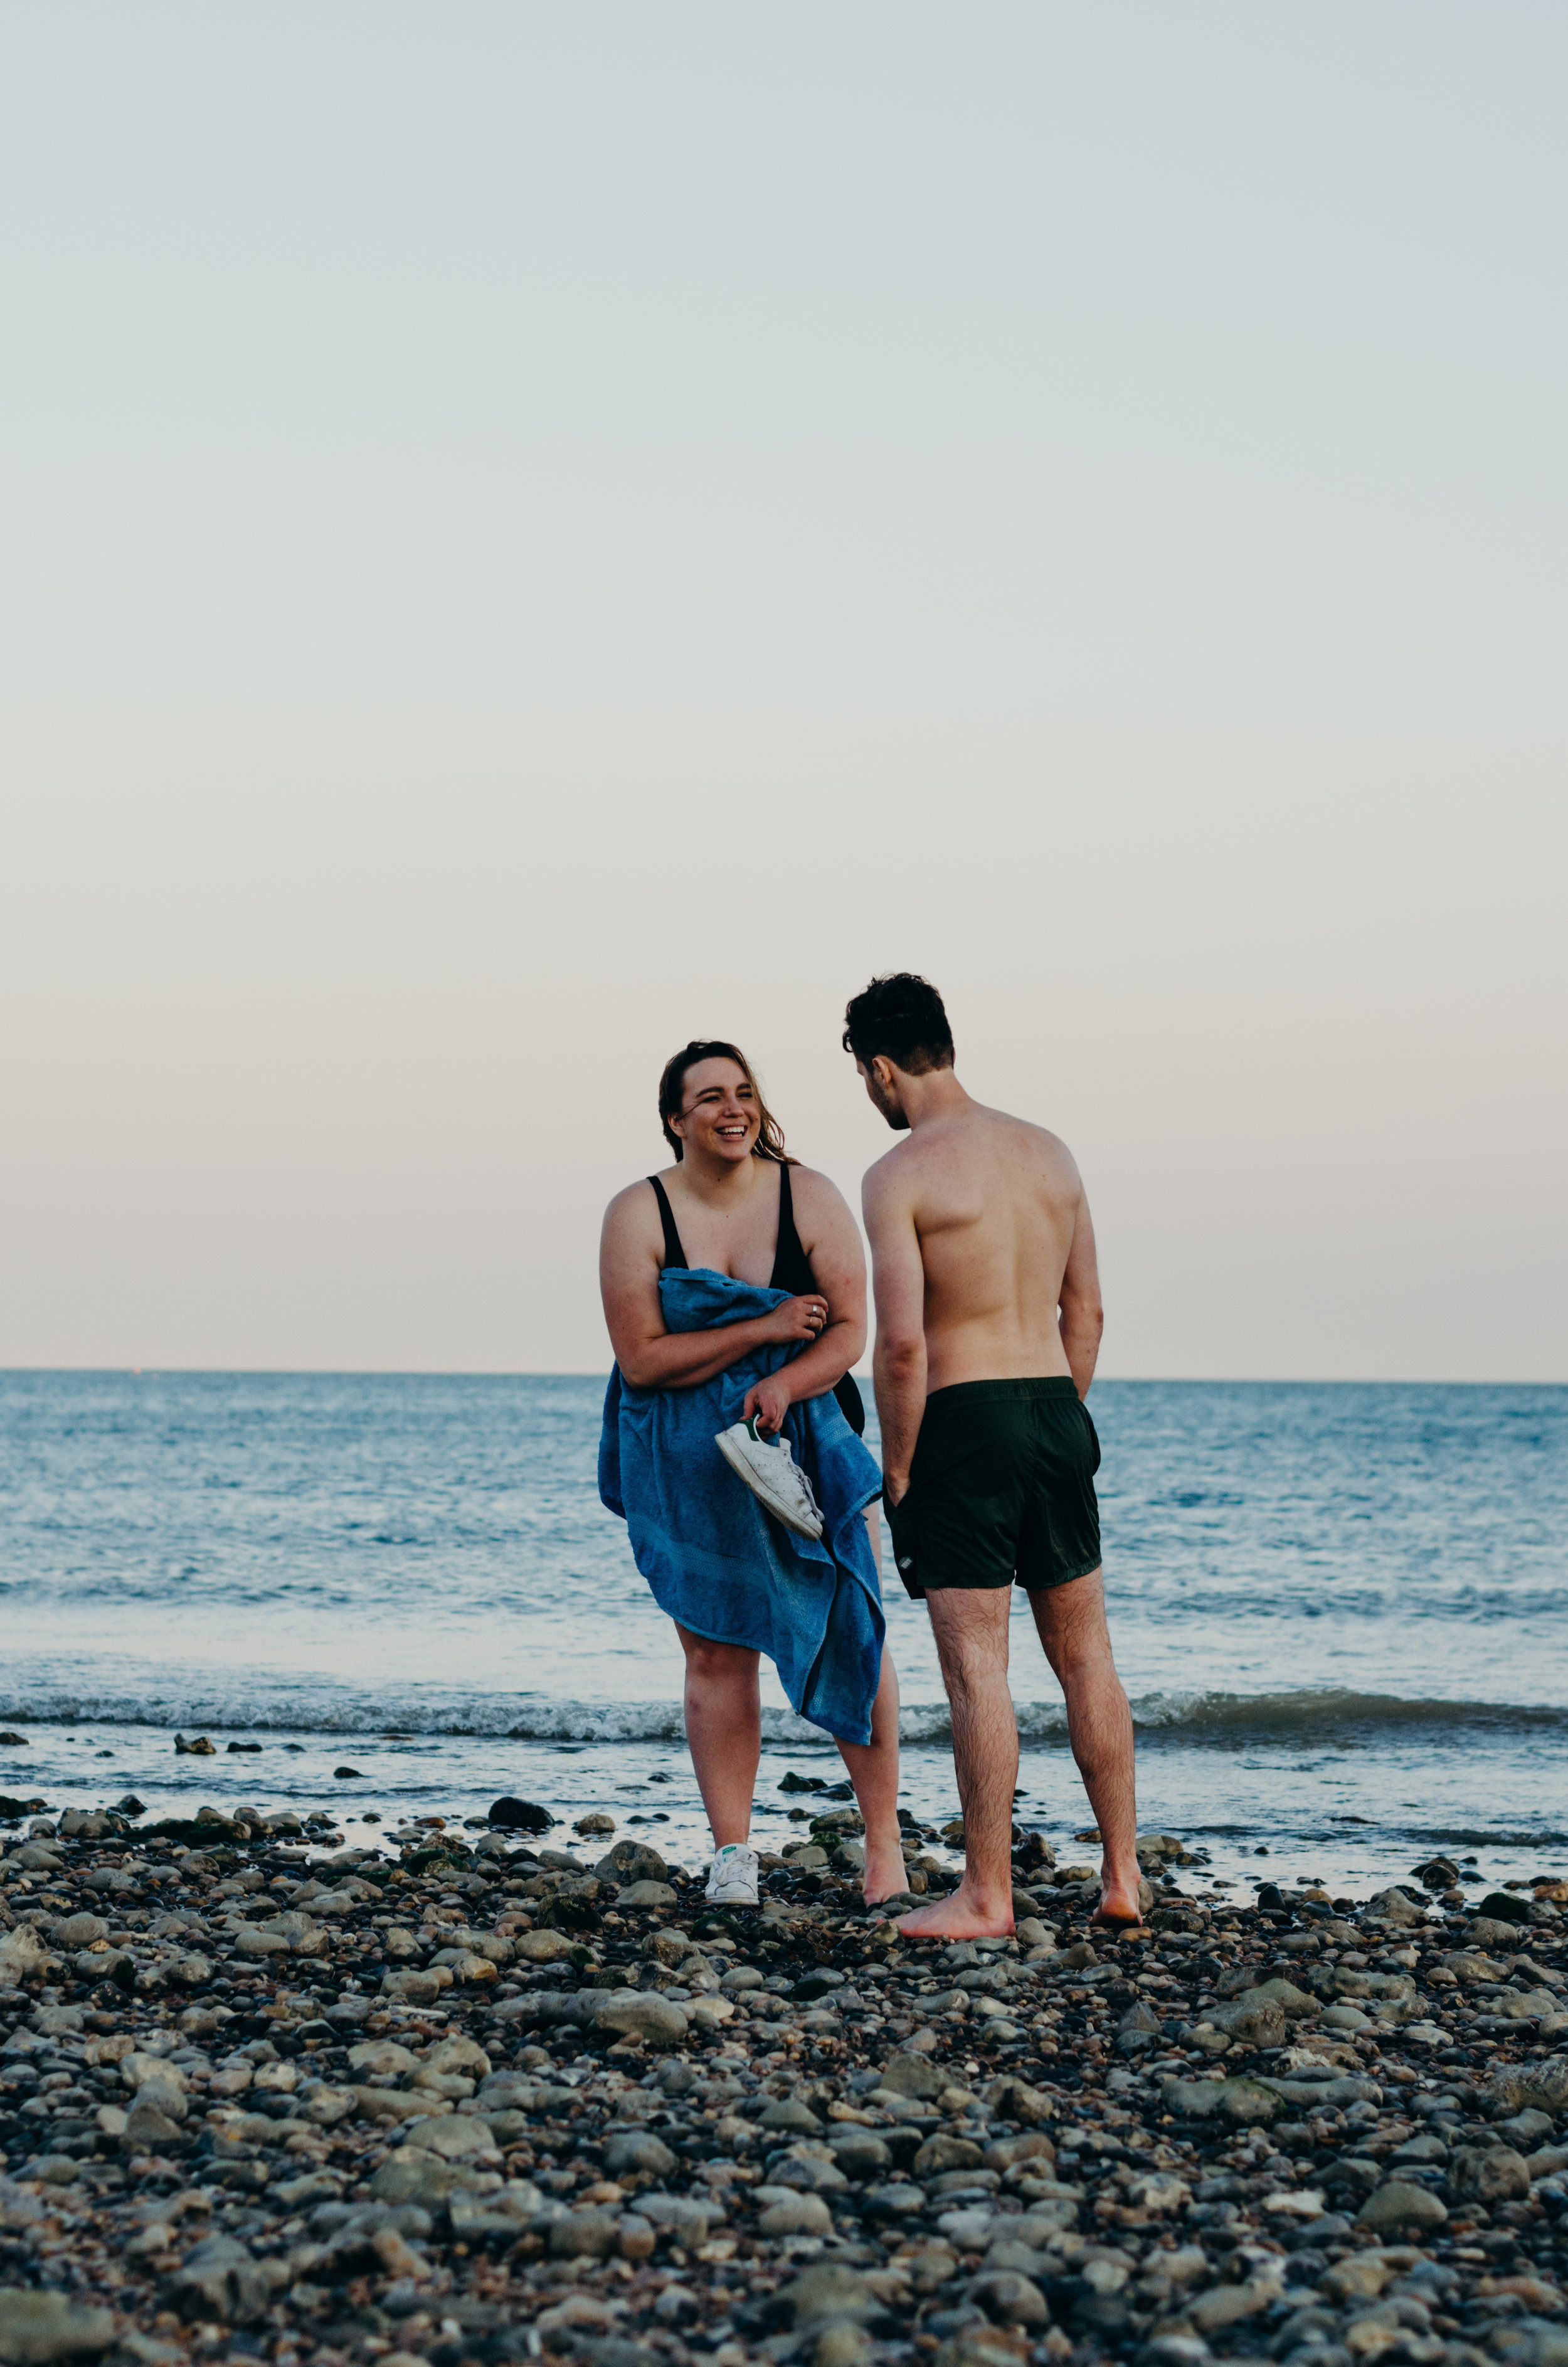 Rebecca & Dougie - Cuckmere Haven - Couple Session - Aiste Saulyte Photography-125.jpg